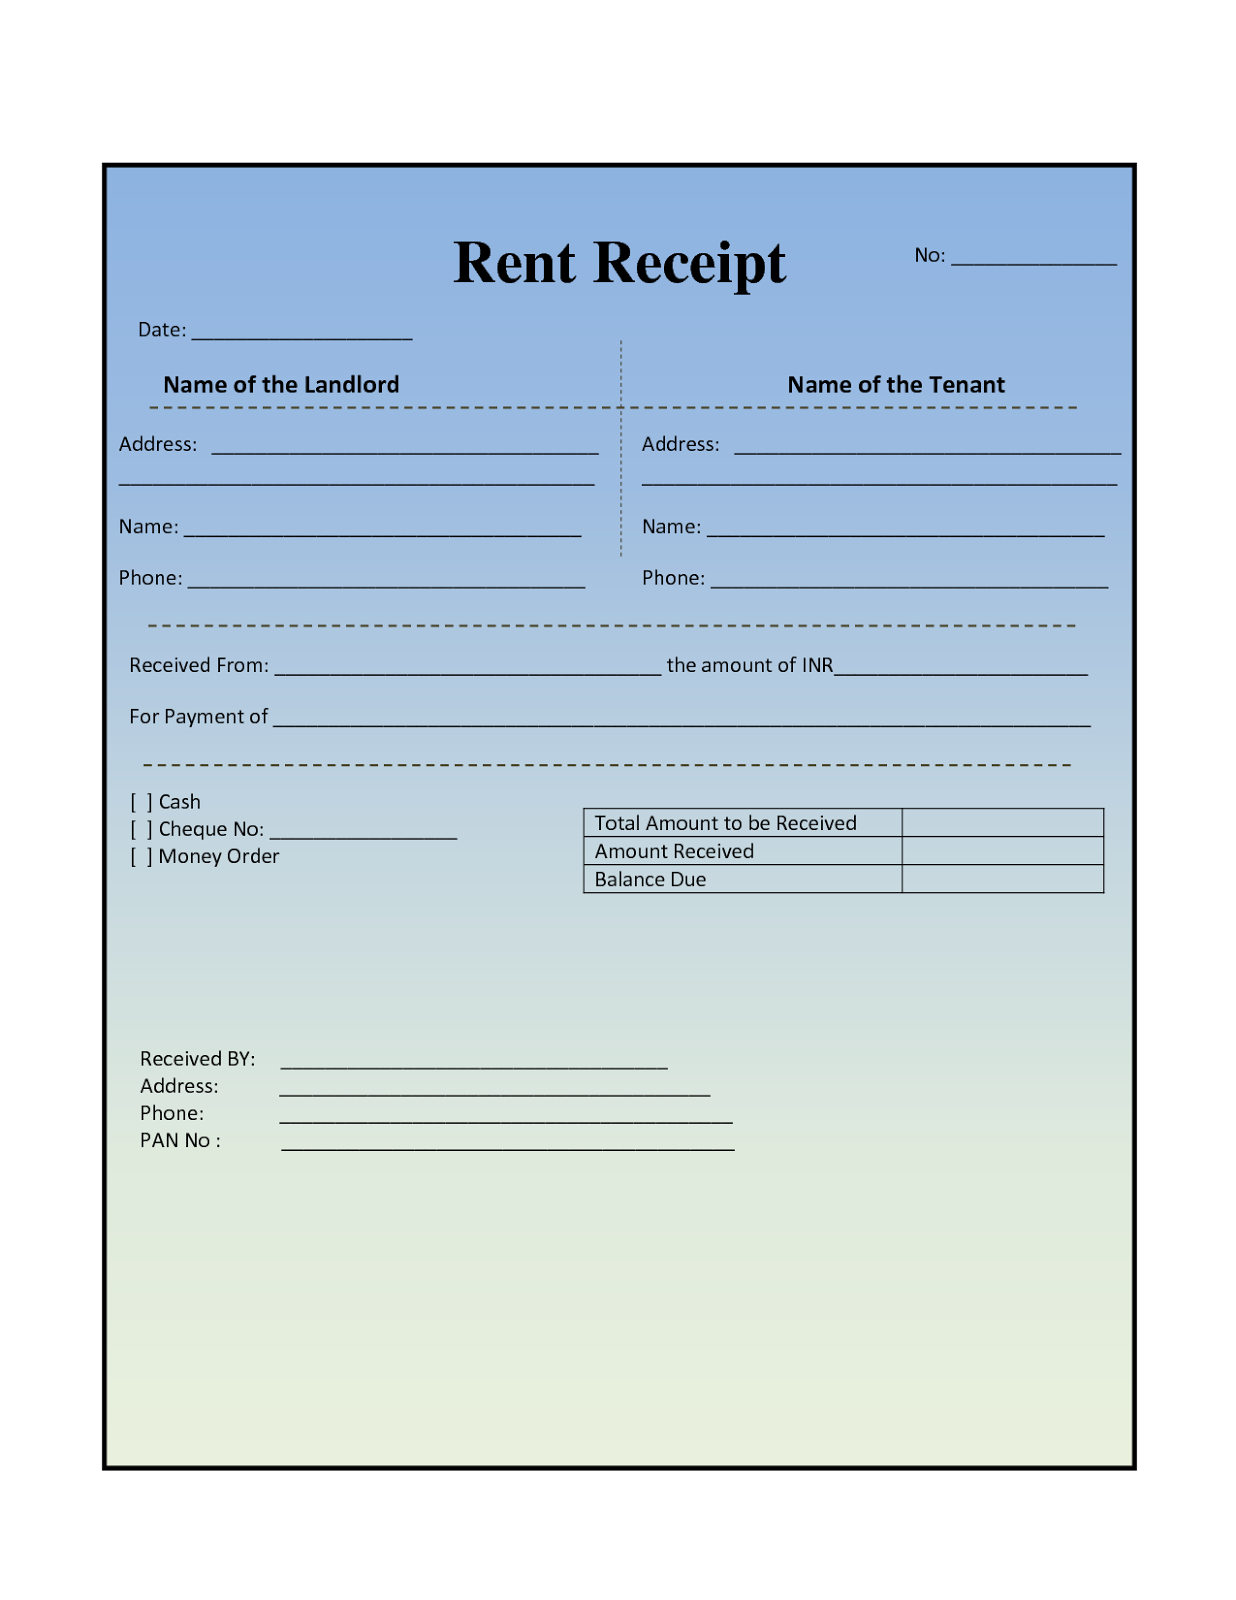 Superb House Rental Invoice Template In Excel Format In Rental Invoice Template Free